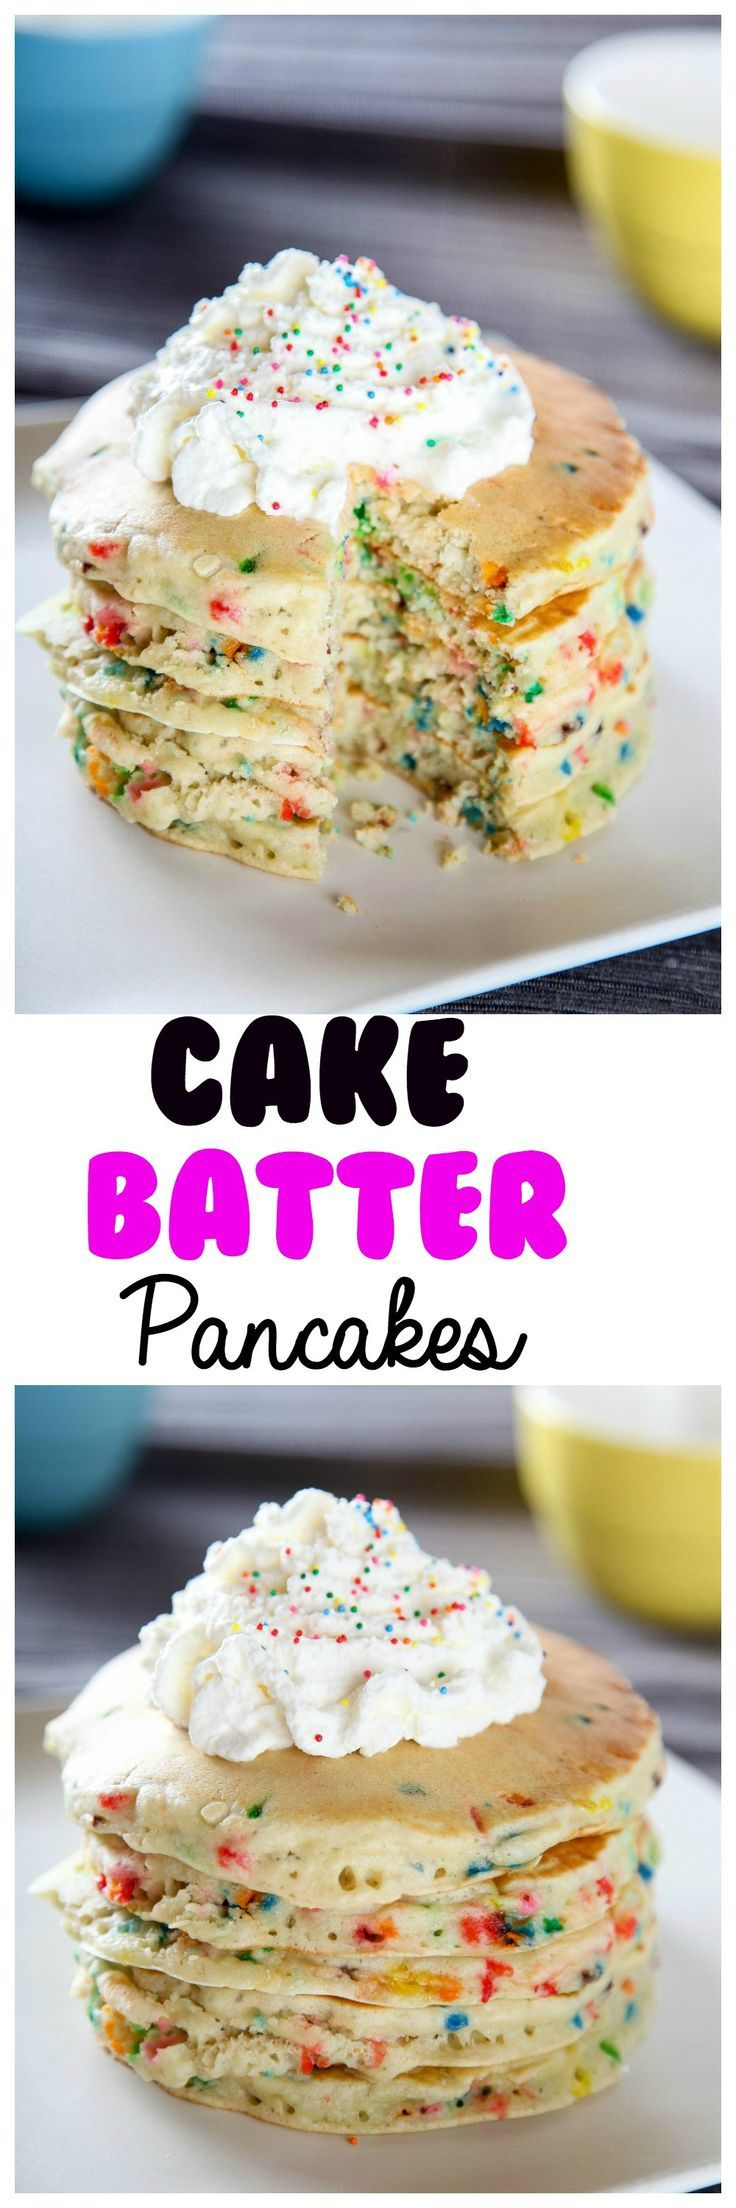 Cake Batter Funfetti Pancakes: Fluffy melt in your mouth pancakes topped with a sweetened whipped cream. Now you can enjoy the flavor of cake: for breakfast! #cakebatter